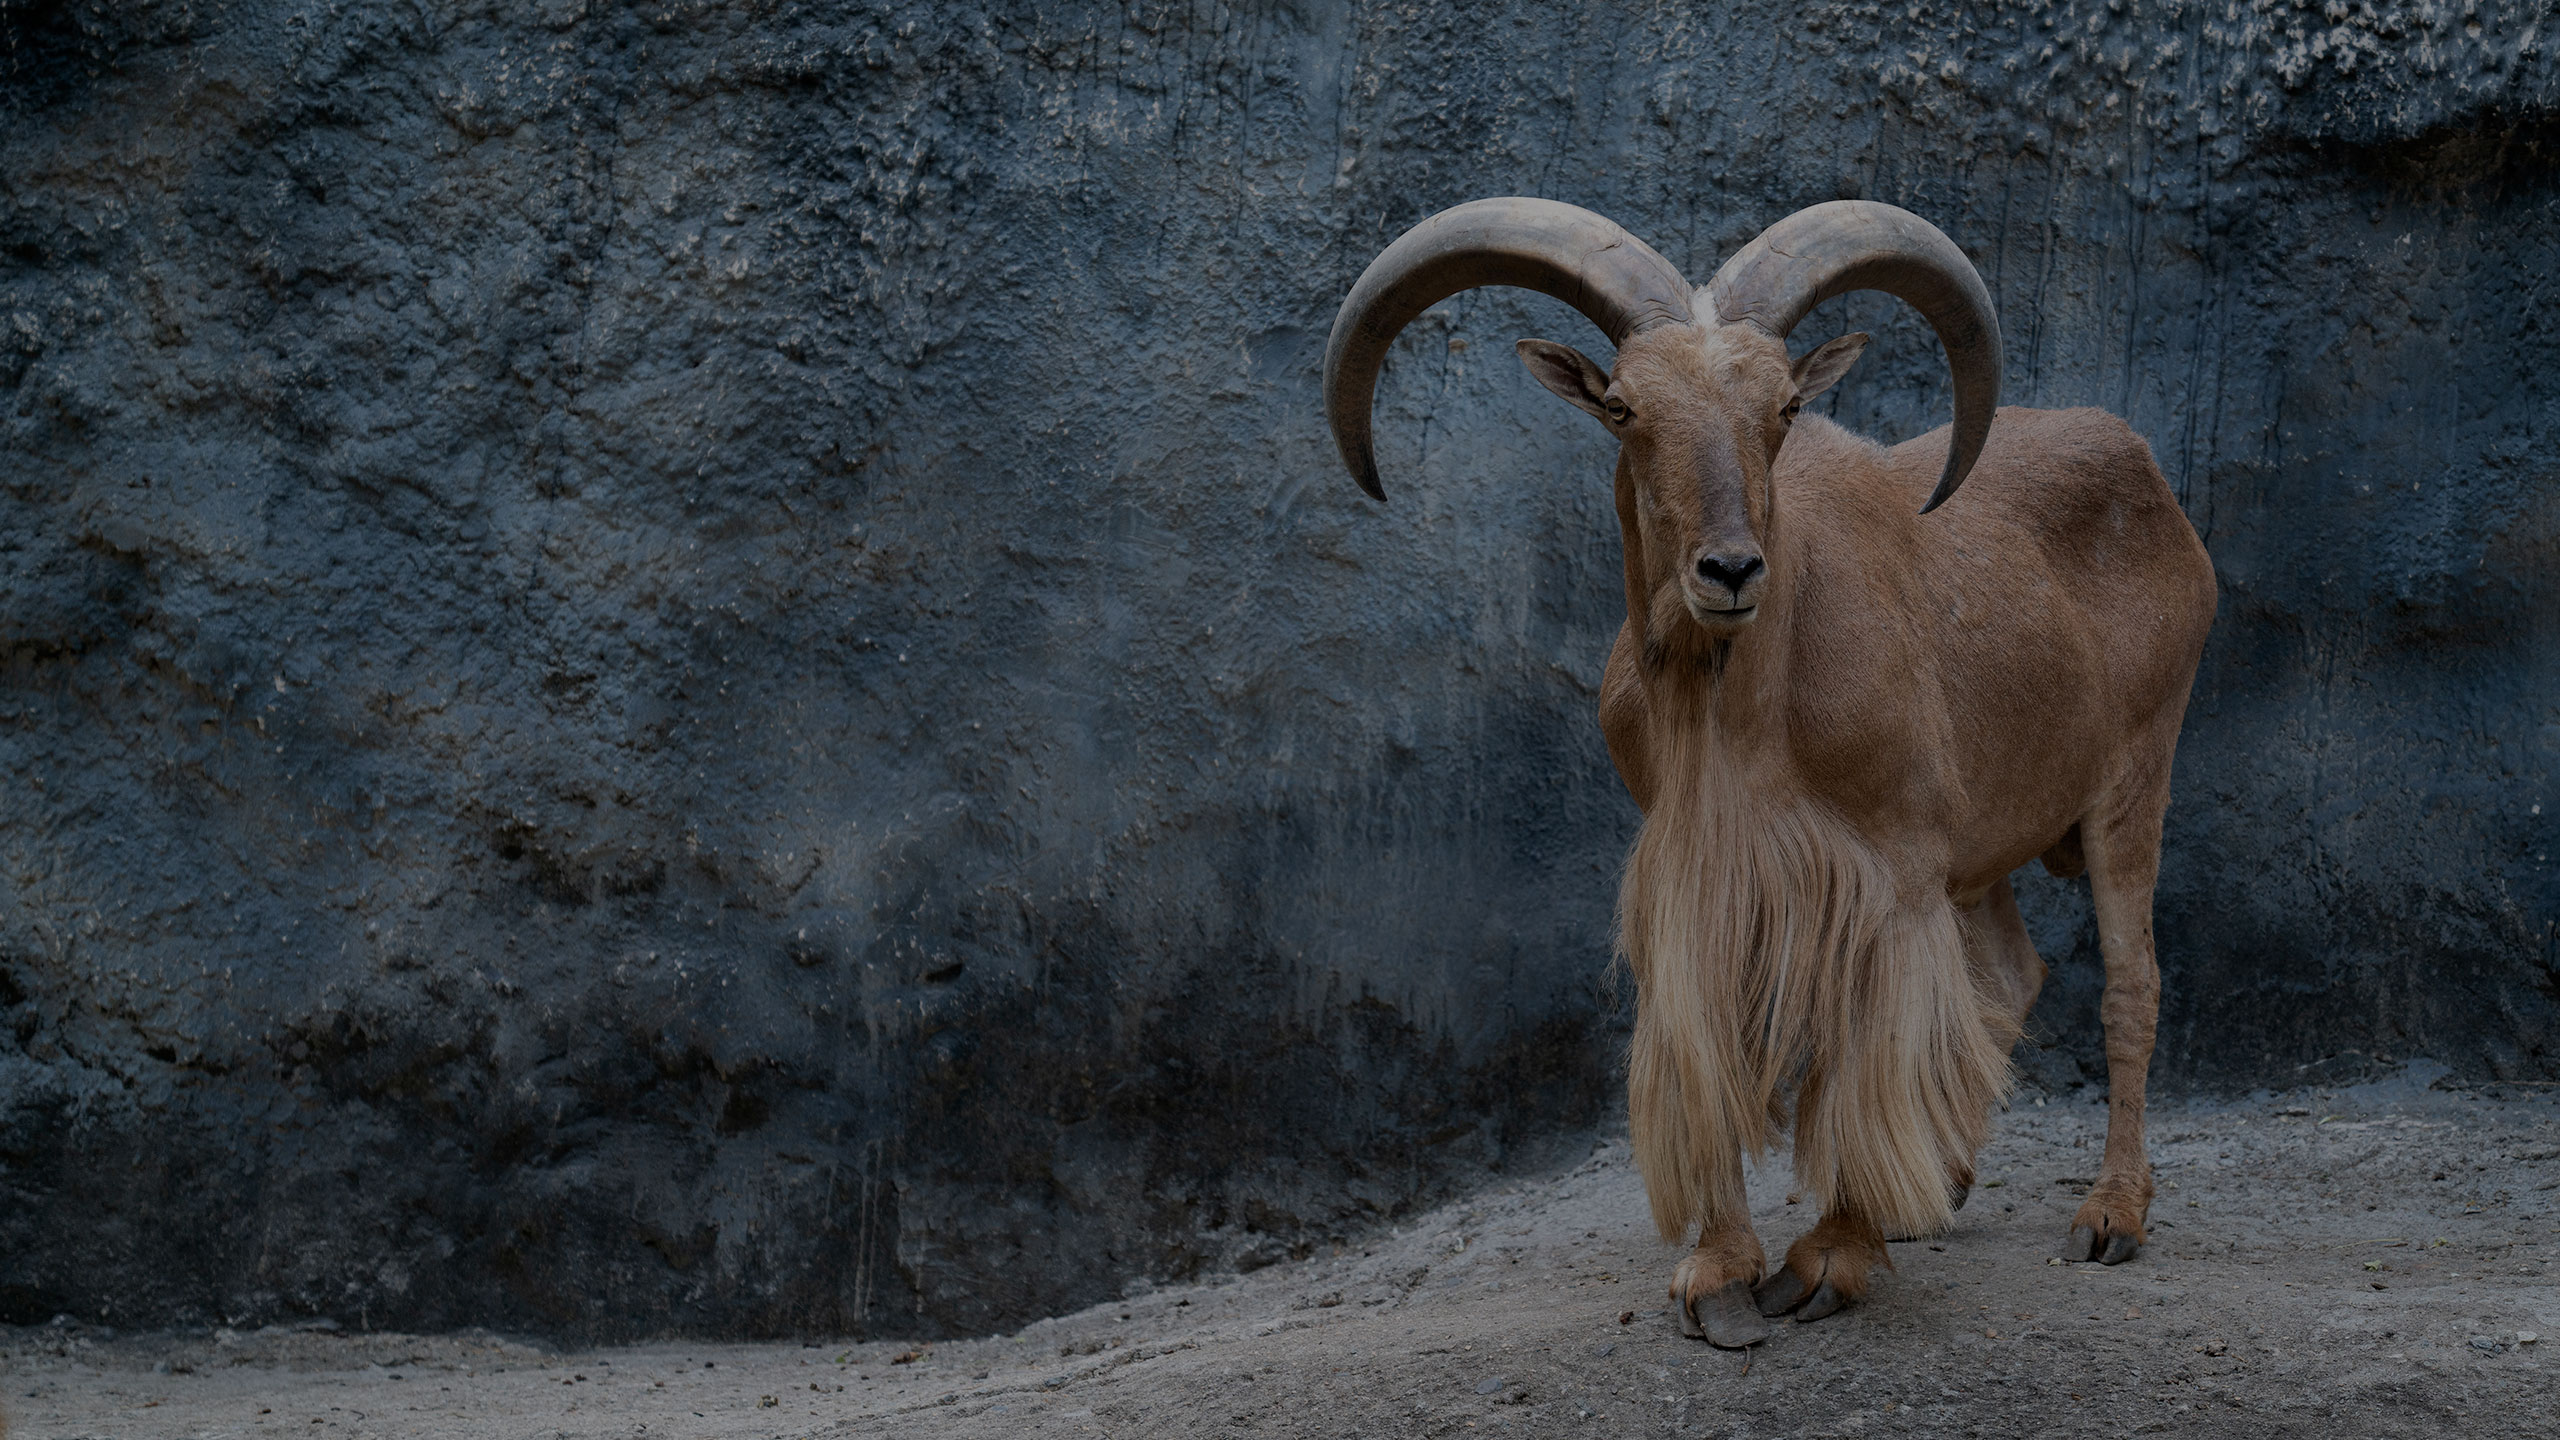 aoudad hunting guide texas - new mexico - G3 Outfitters